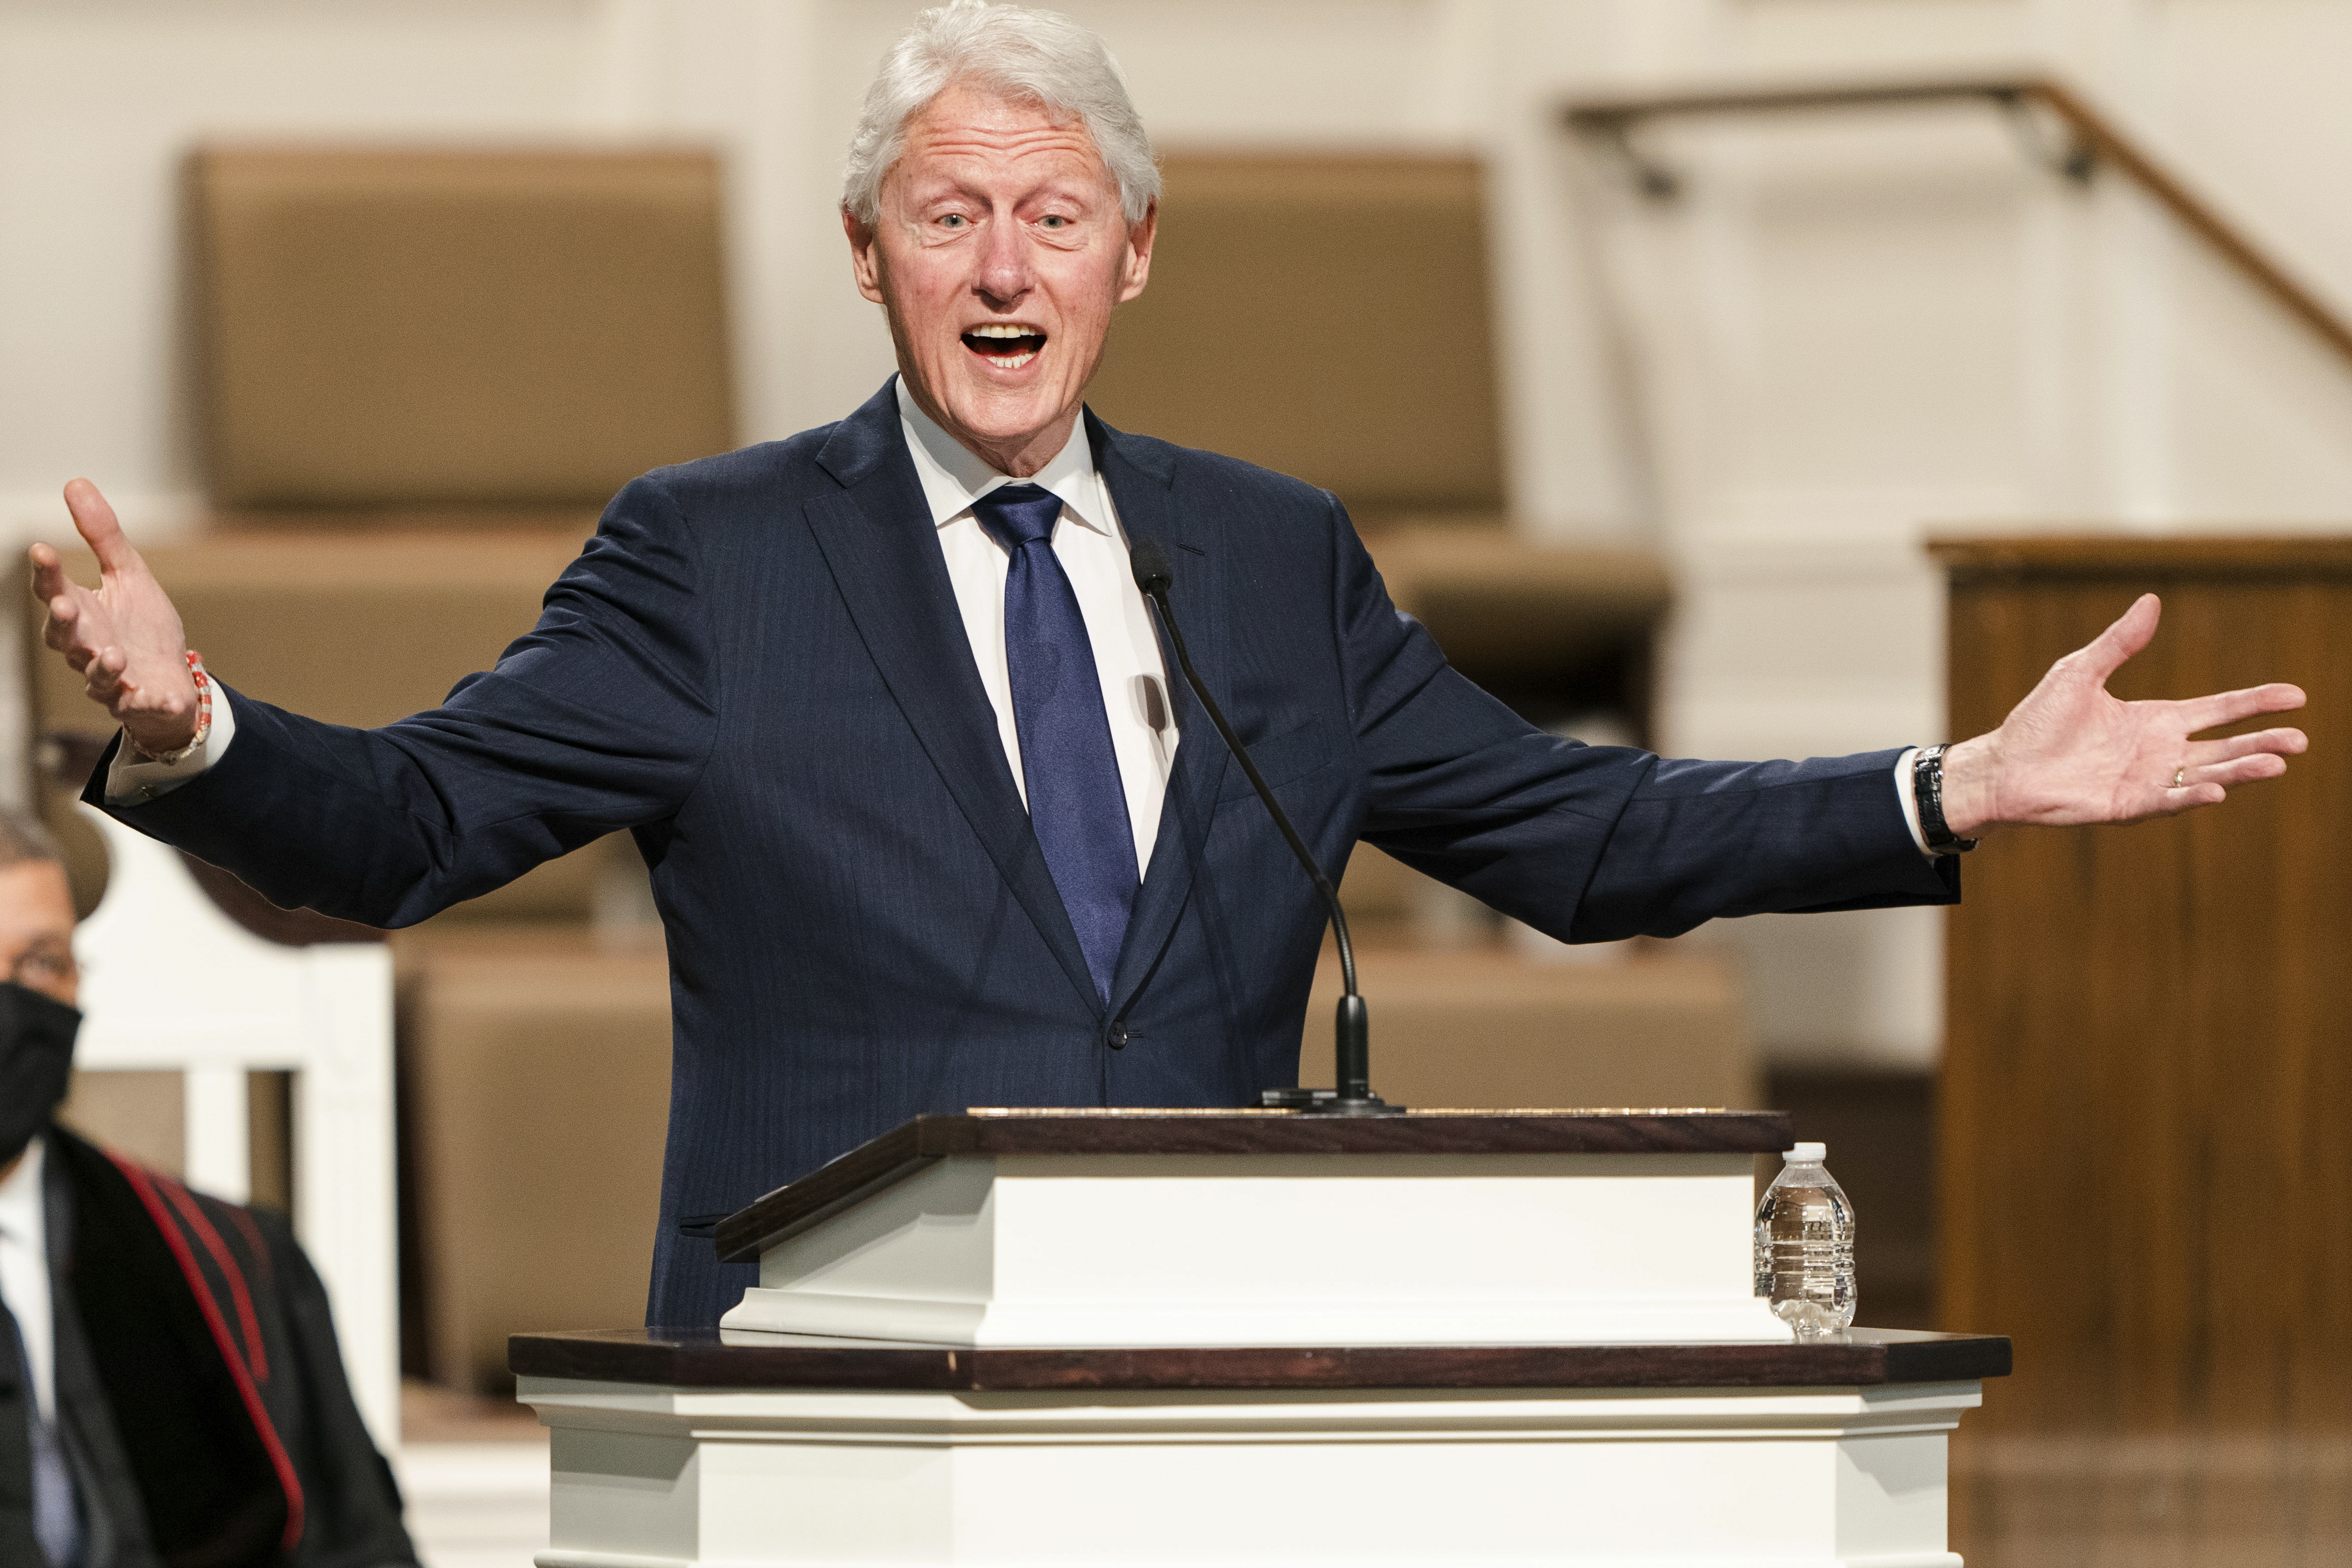 In this Jan. 27, 2021, file photo, former President Bill Clinton speaks during funeral services for baseball legend Hank Aaron, at Friendship Baptist Church in Atlanta.